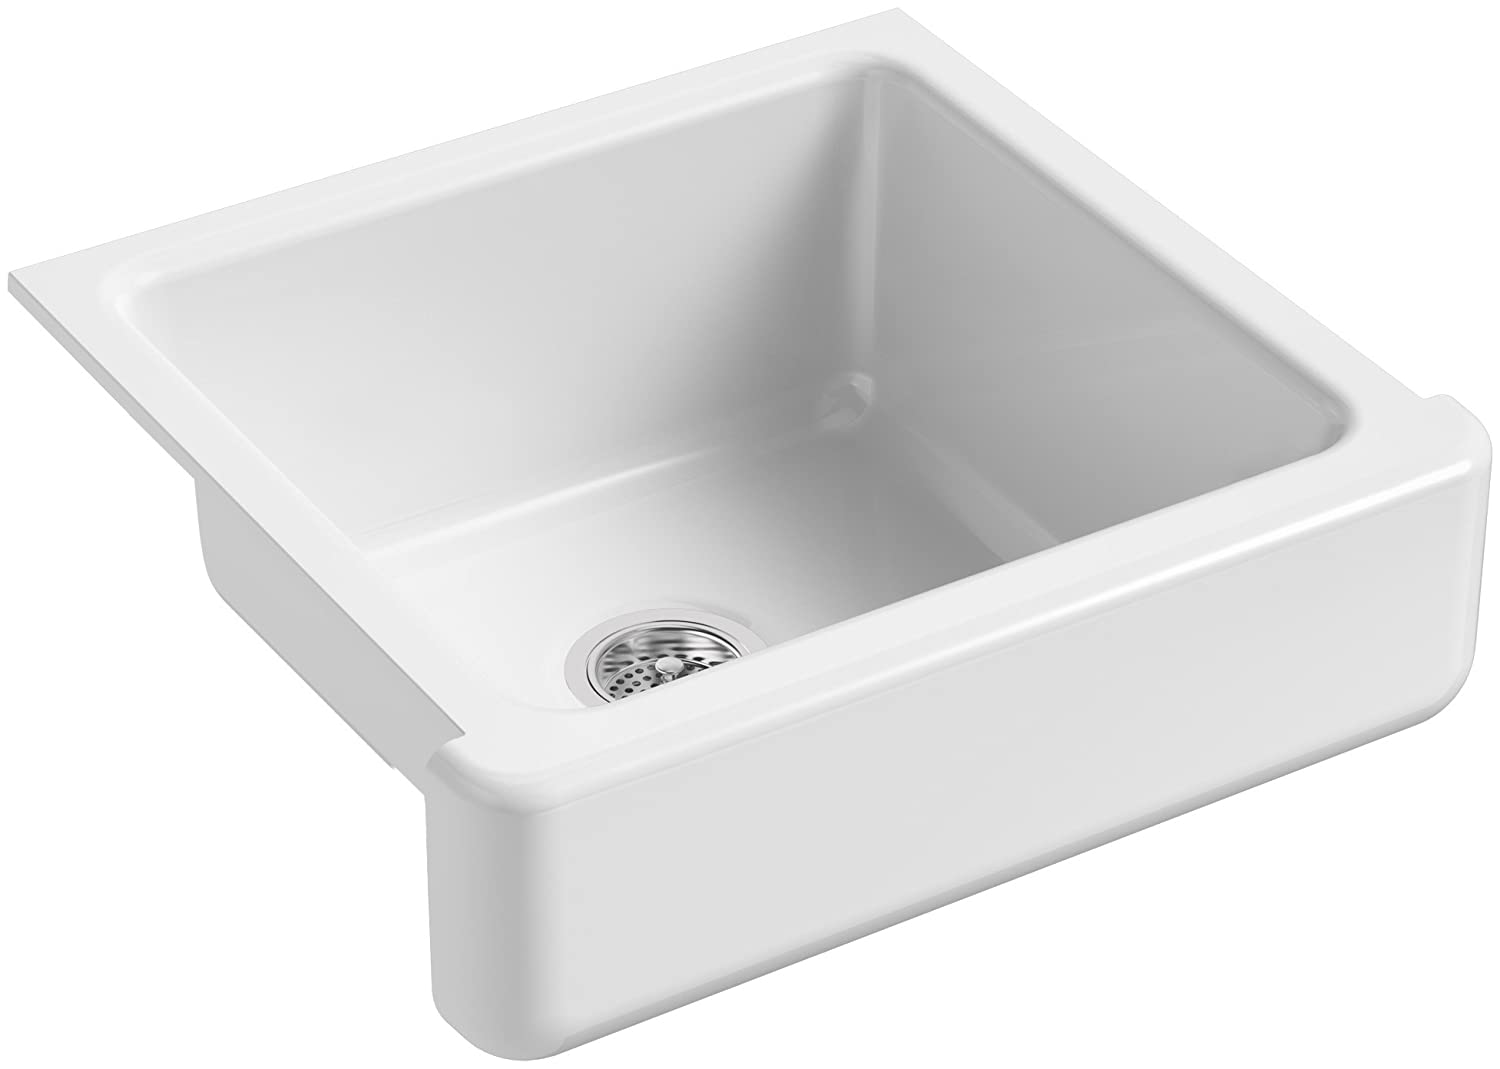 KOHLER K-5664-0 Whitehaven Self-Trimming Undermount Single-Bowl Kitchen Sink with Short Apron, 23-1/2 x 21-9/16 x 9-5/8-Inch, White